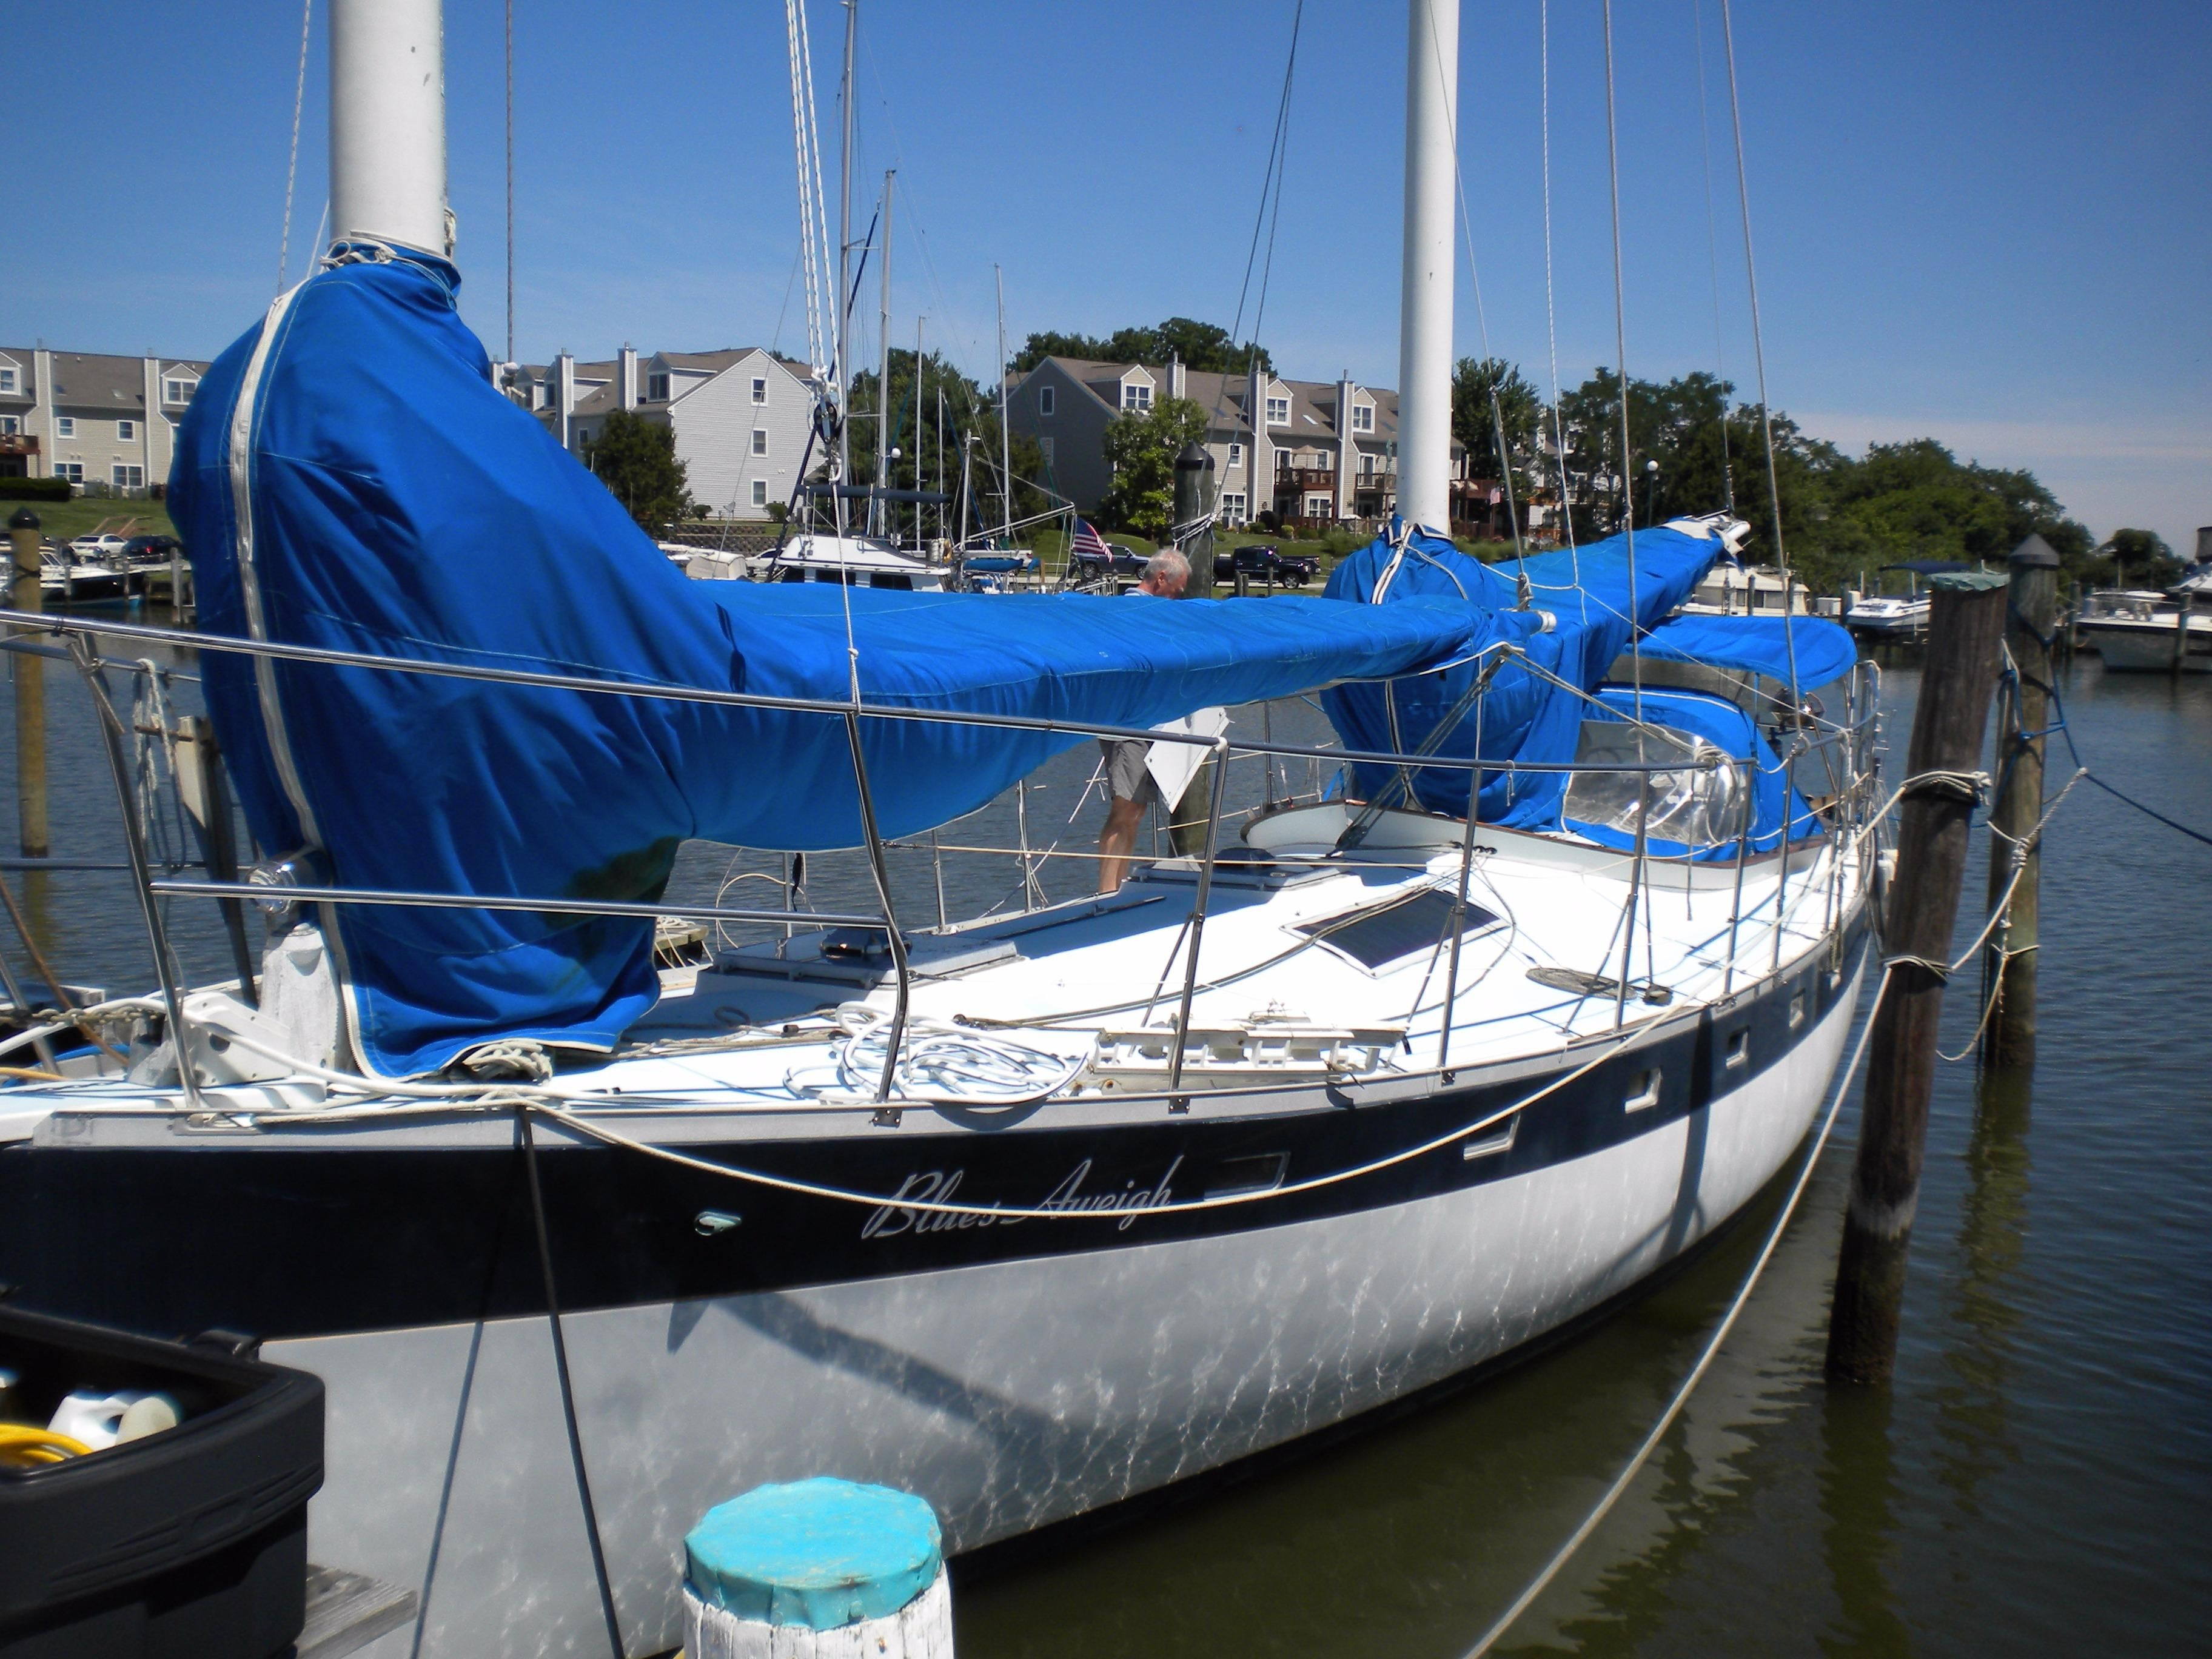 World Cat Boats For Sale >> 1981 Freedom Cat Ketch Sail Boat For Sale - www.yachtworld.com